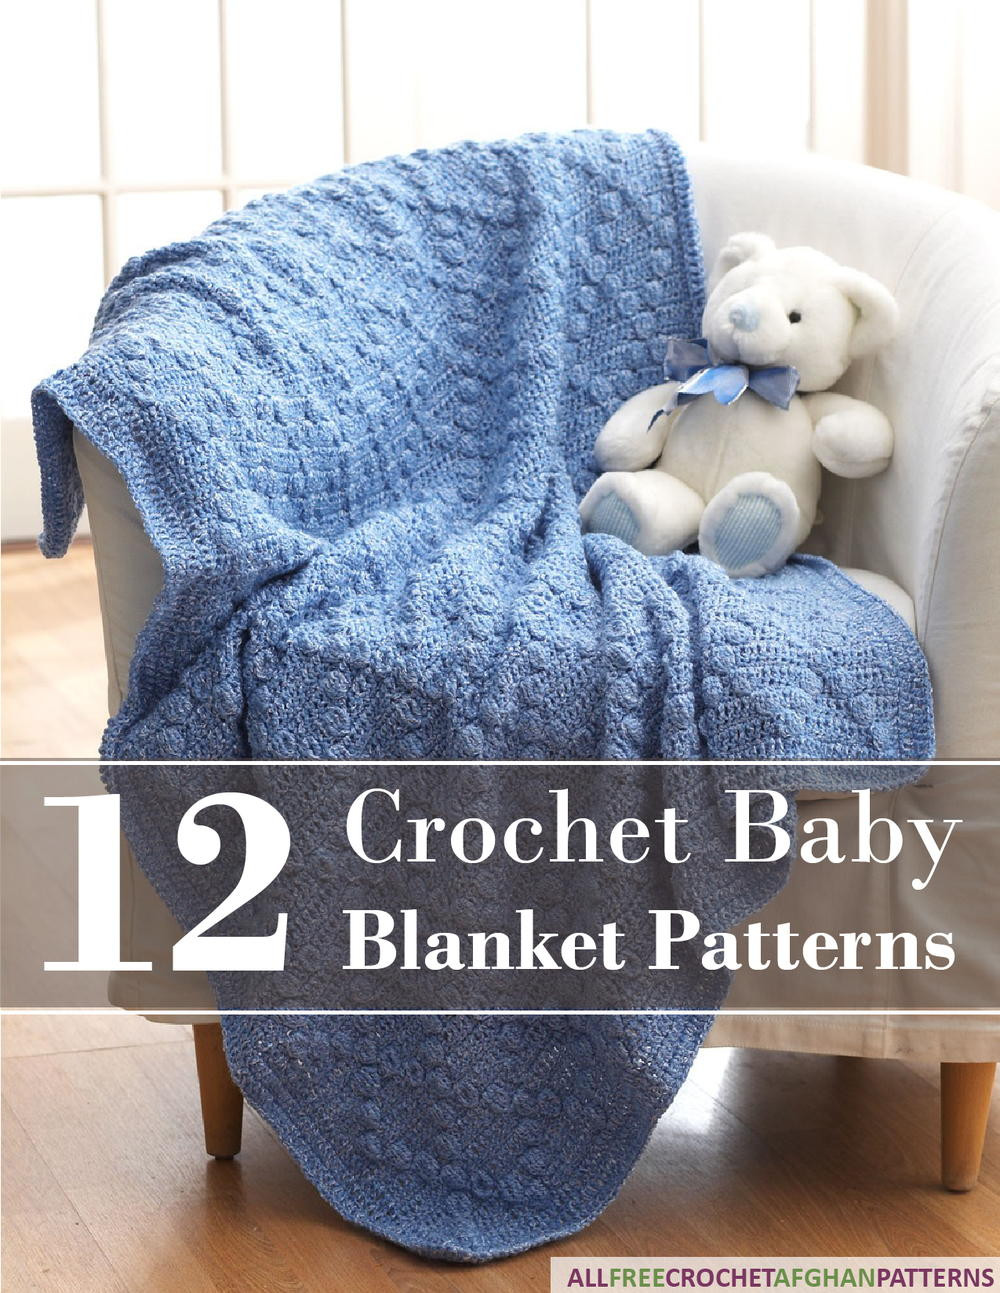 Baby Blanket Patterns Awesome 12 Crochet Baby Blanket Patterns Free Ebook Of Delightful 50 Pictures Baby Blanket Patterns